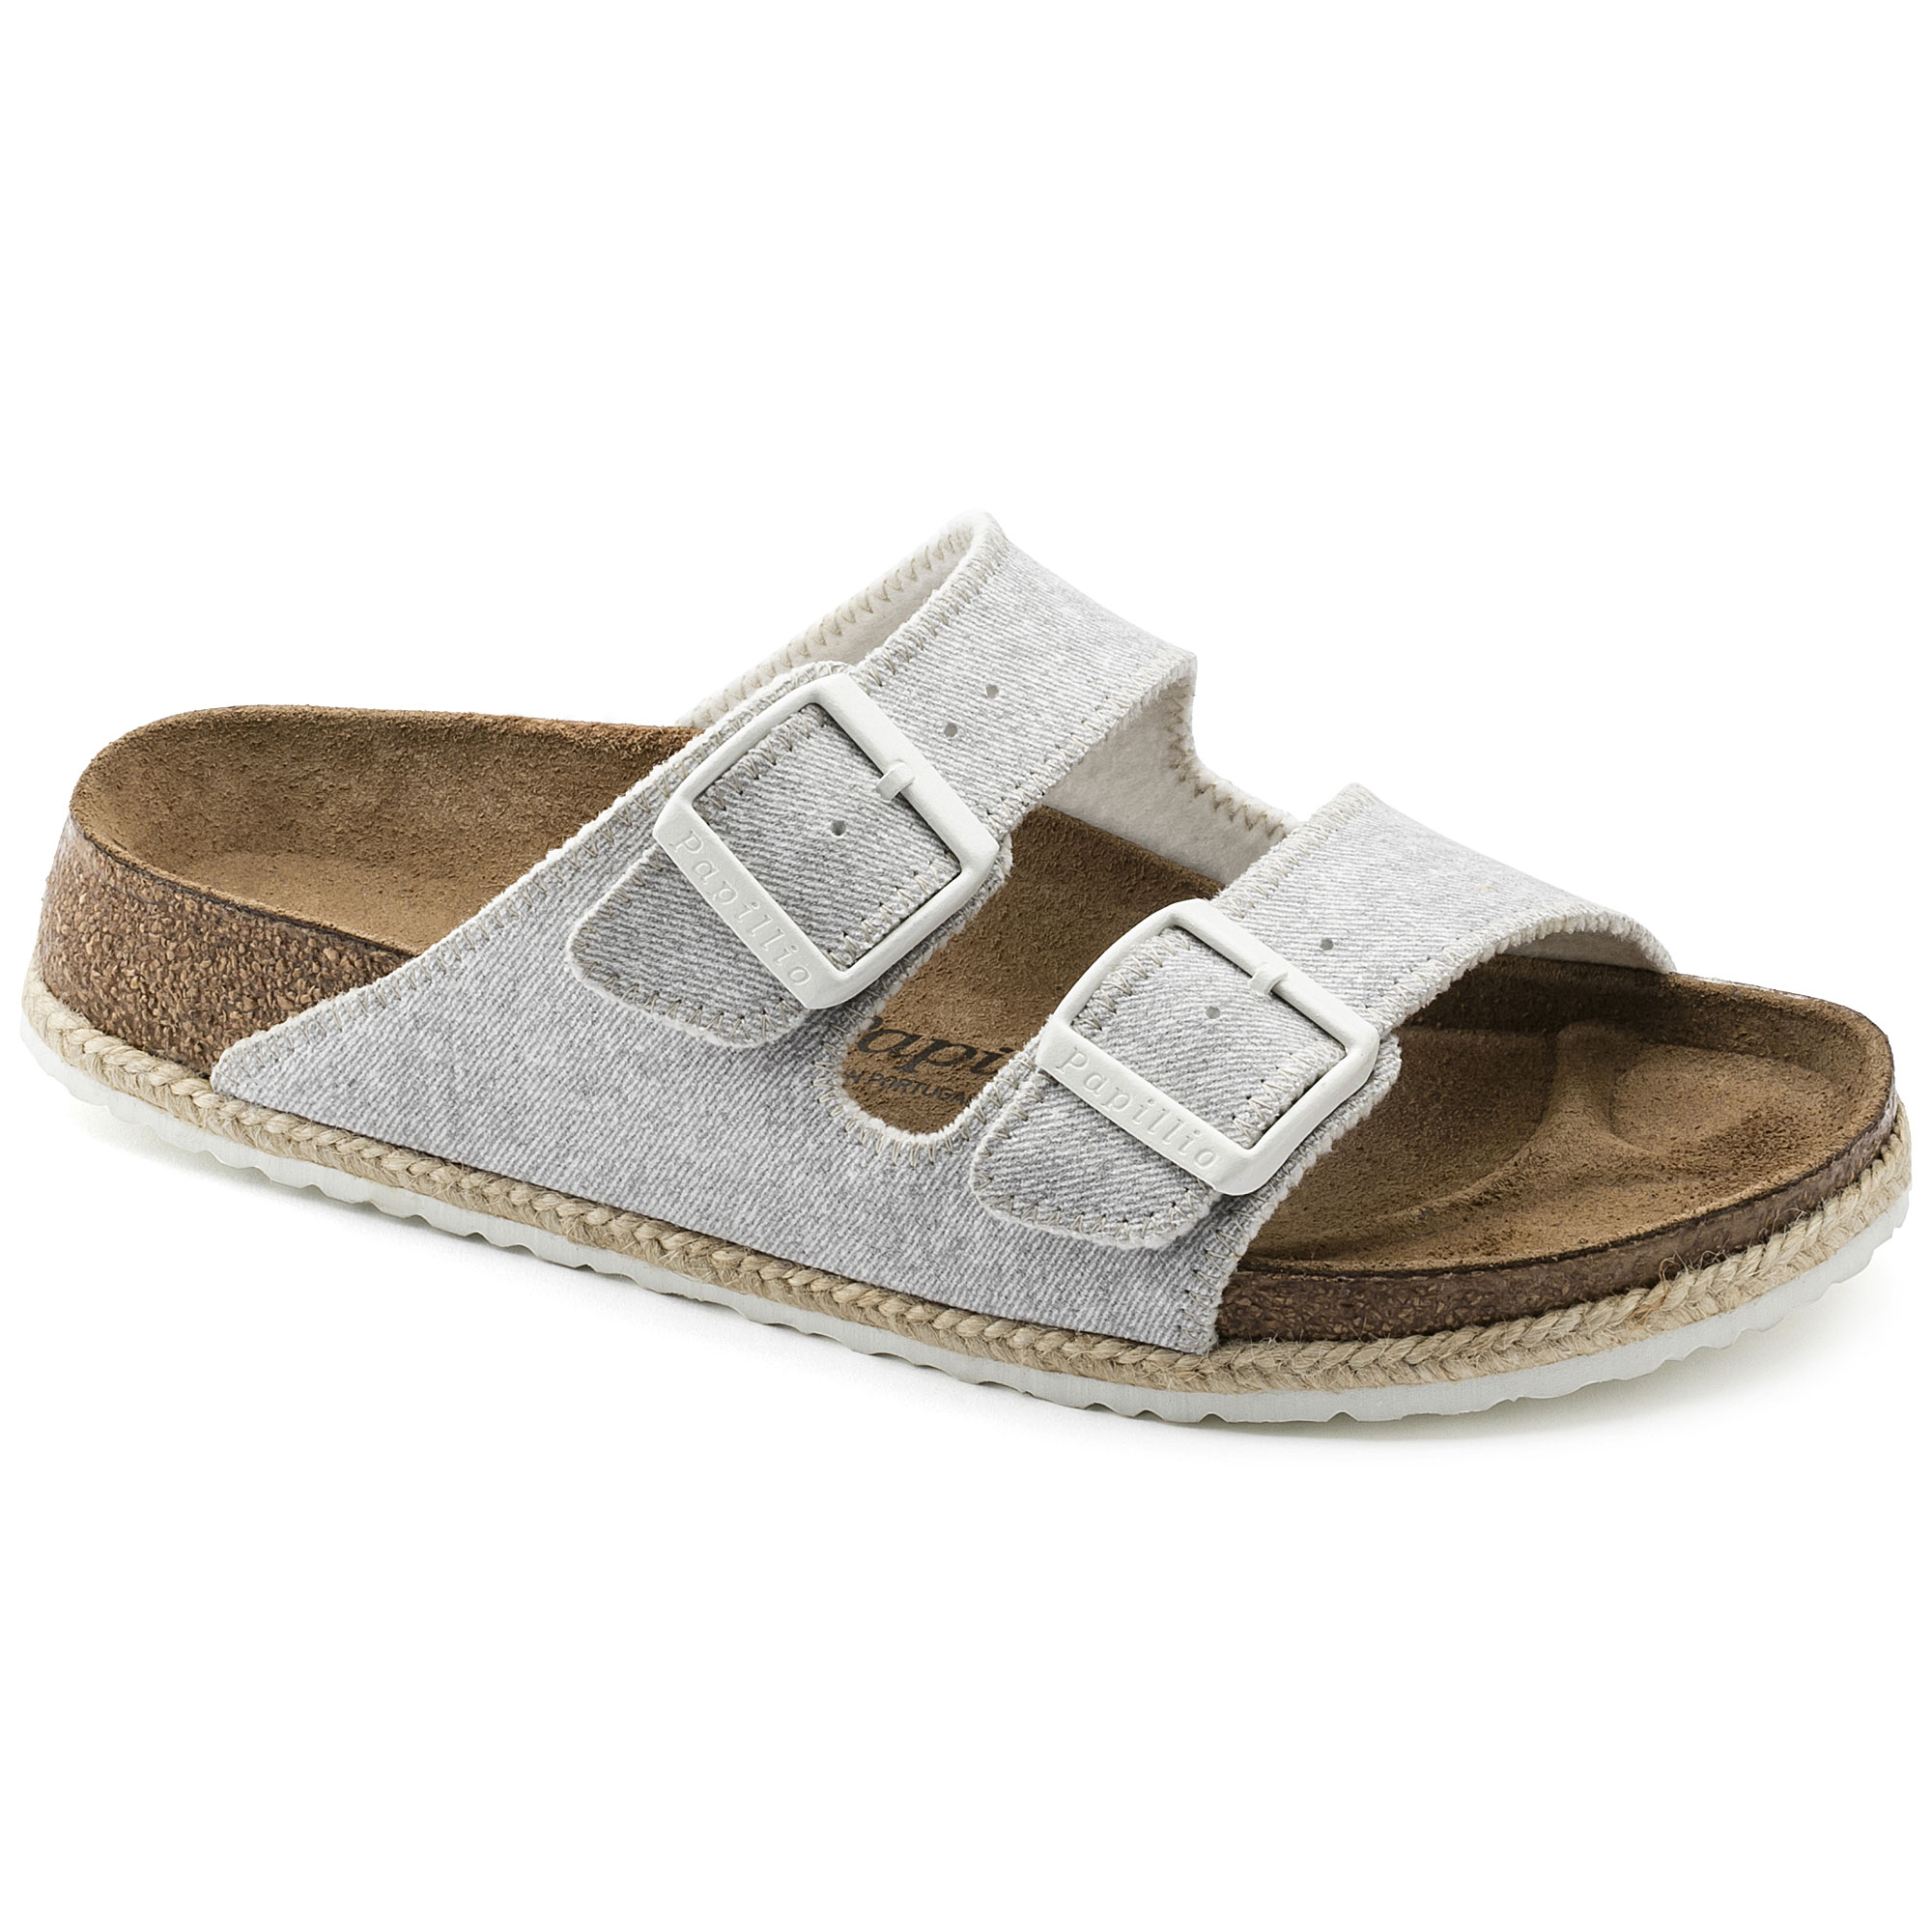 22a4bad64af Arizona Birko-Flor Beach Light Gray